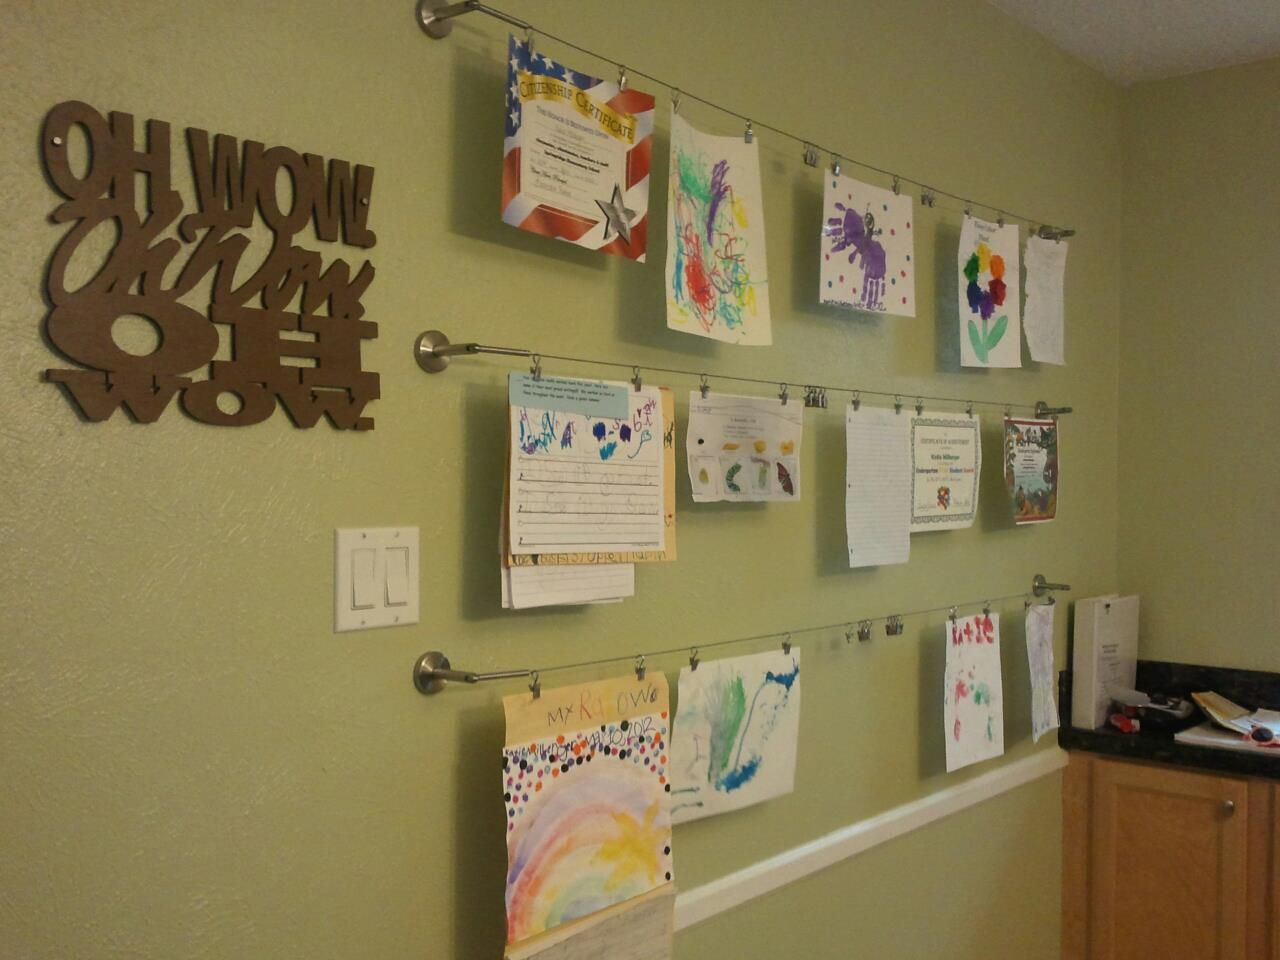 To Hang My Kids Artwork From Ikea Dignitet Curtain Wire And Riktig Curtain Clips Steve Jobs Quot Displaying Kids Artwork Hanging Kids Artwork Kids Artwork